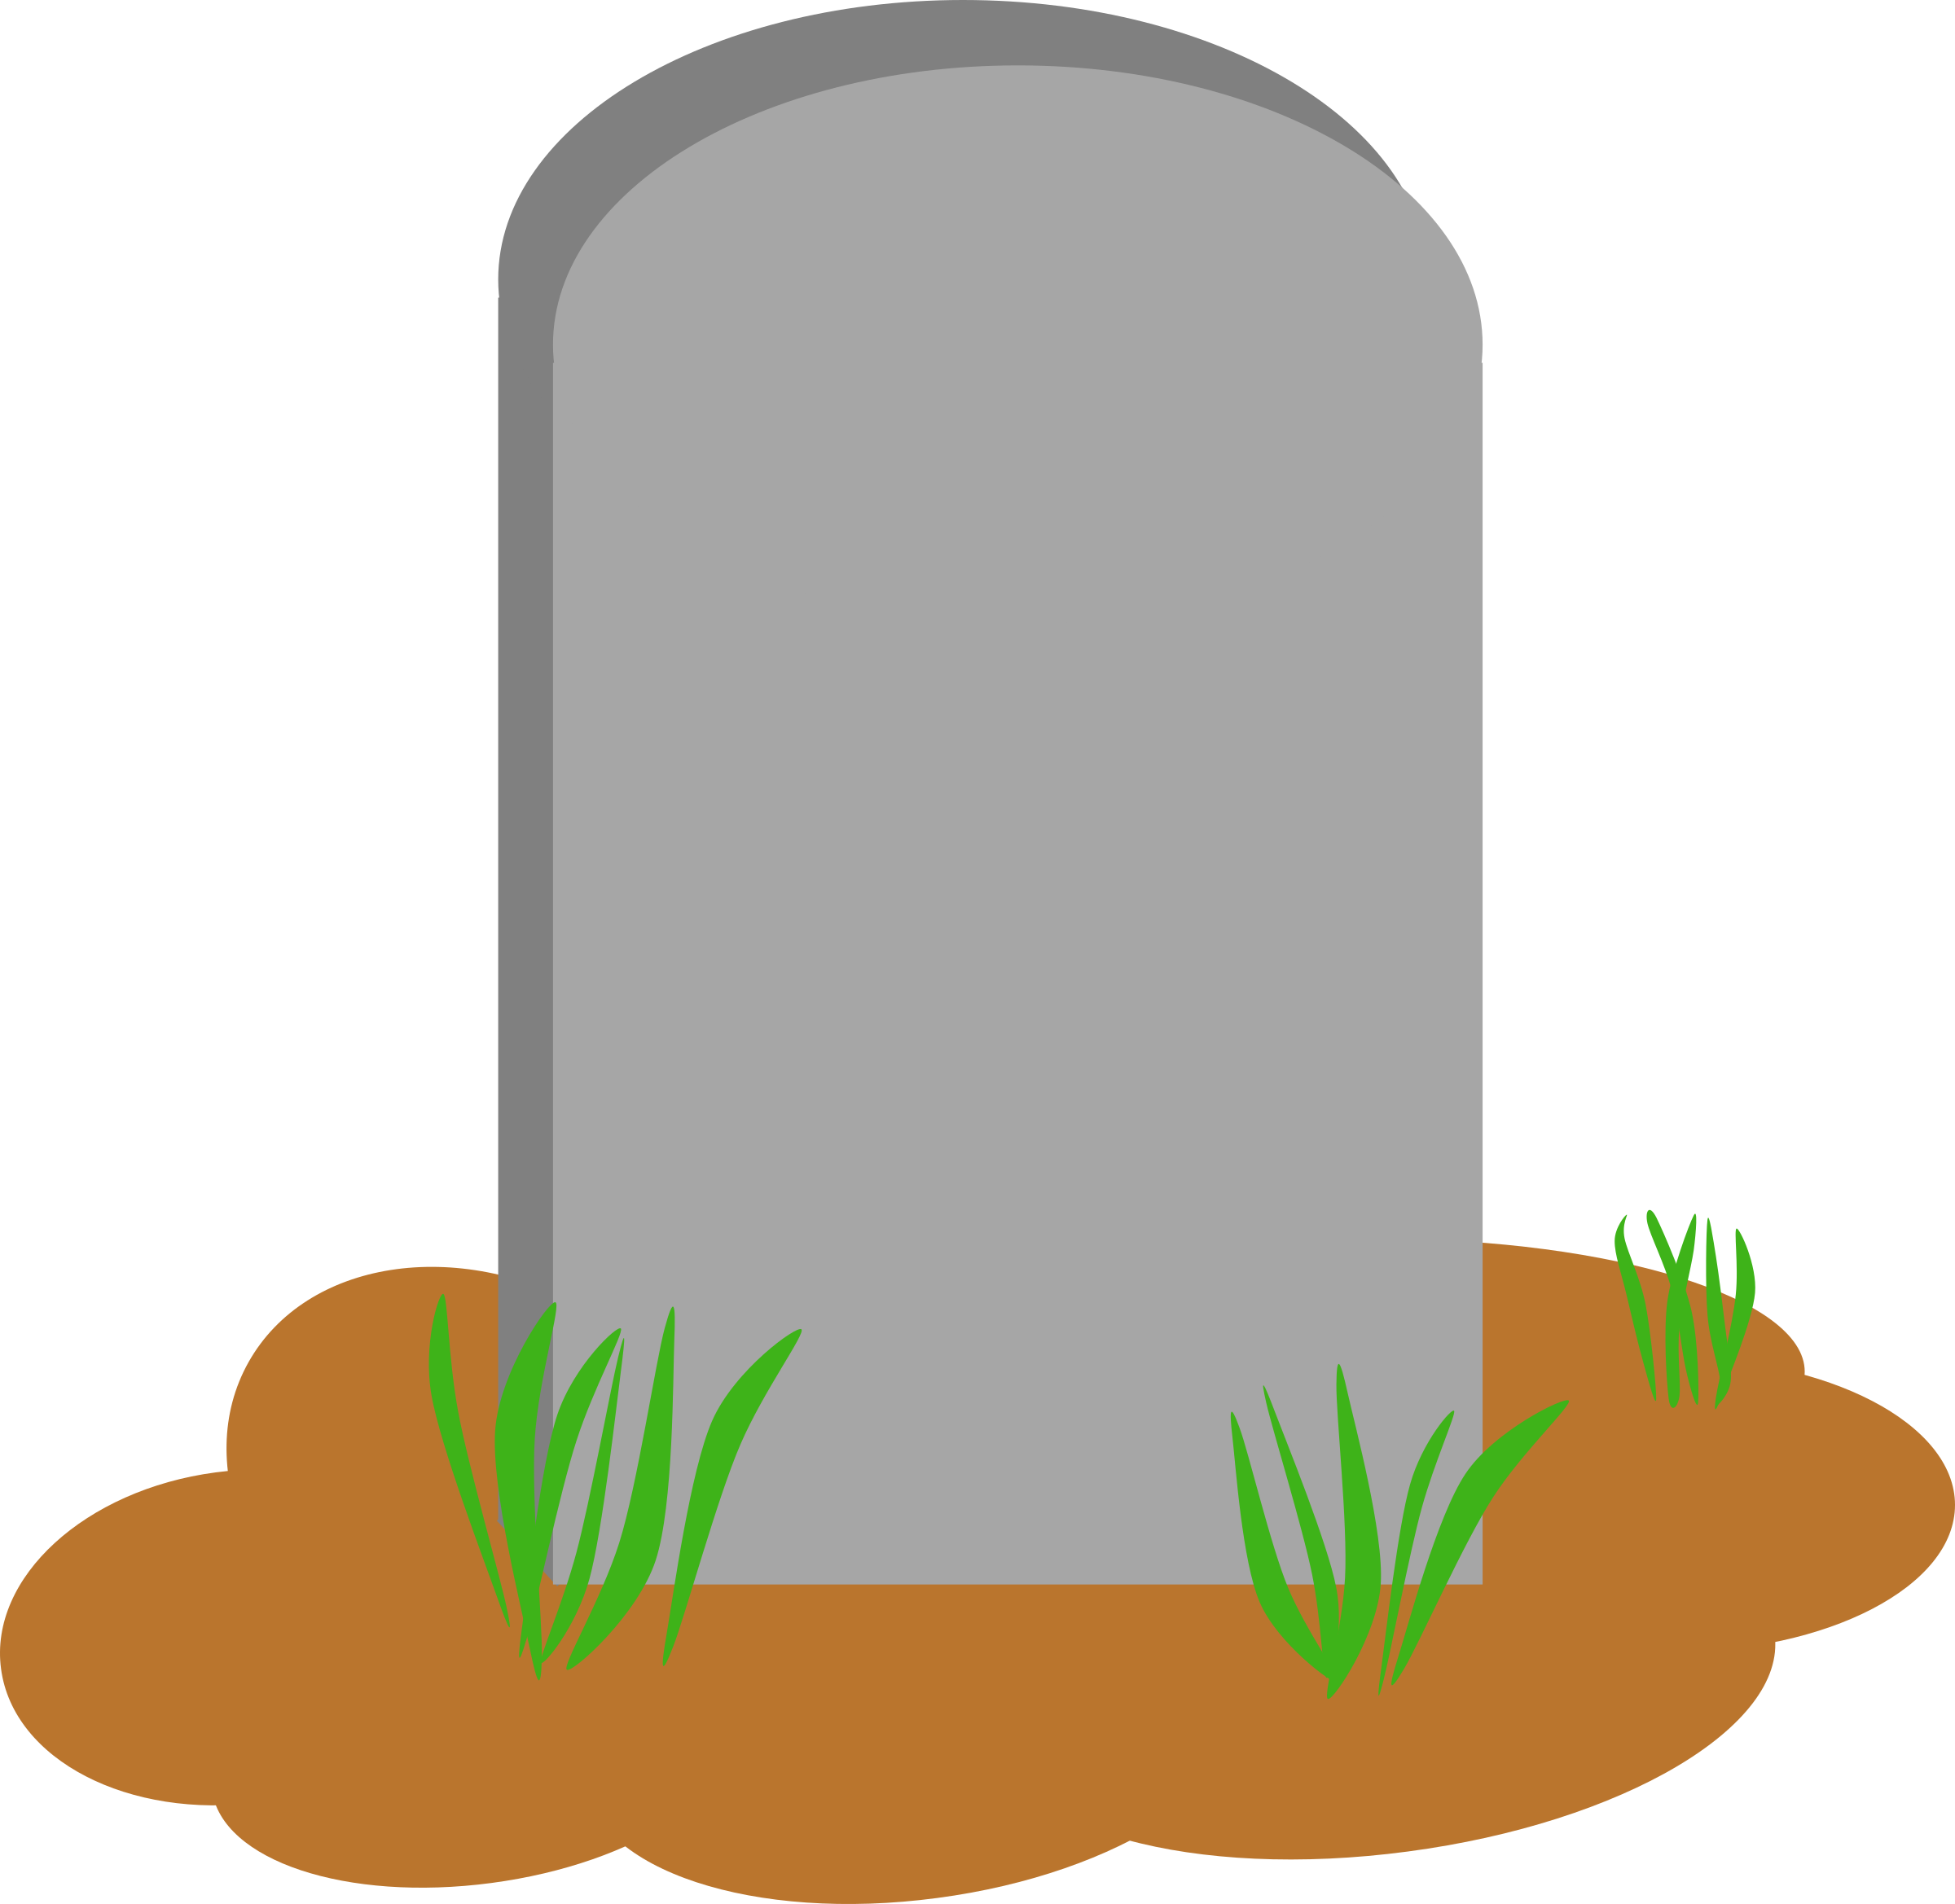 Gravestone clipart free download on WebStockReview